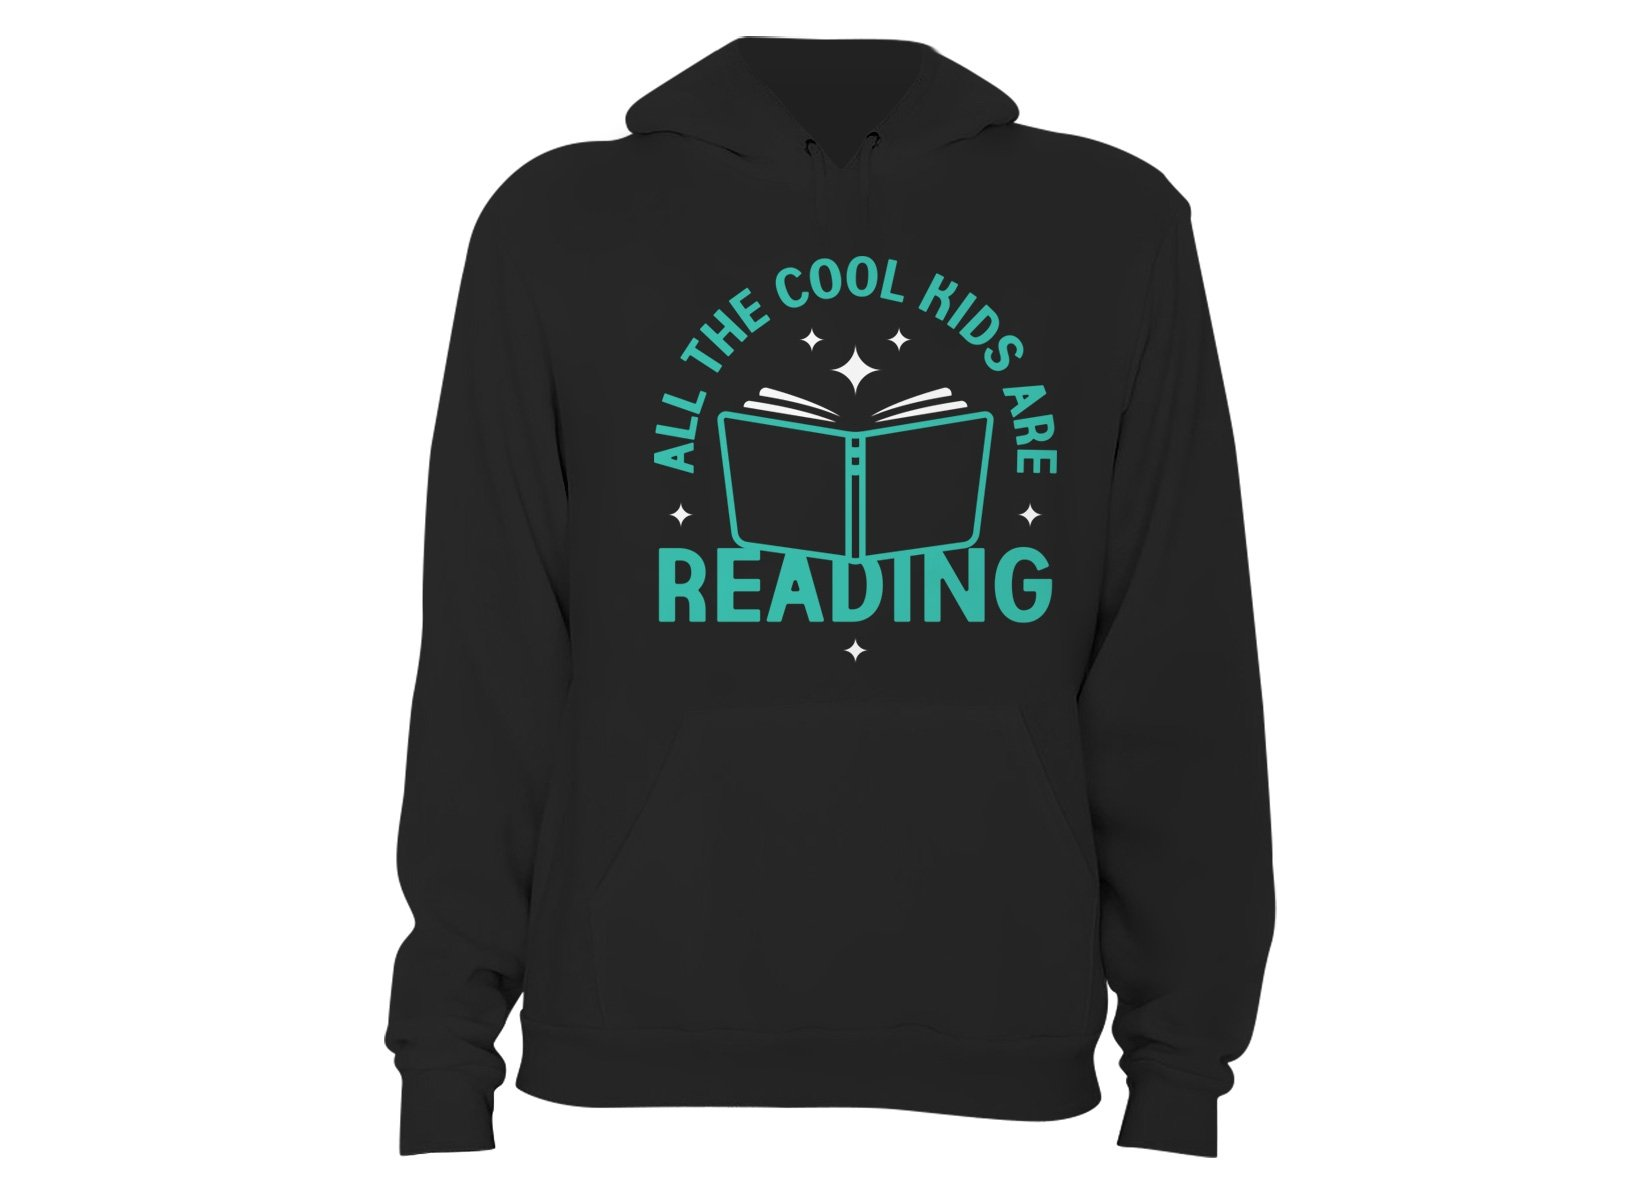 All The Cool Kids Are Reading on Hoodie